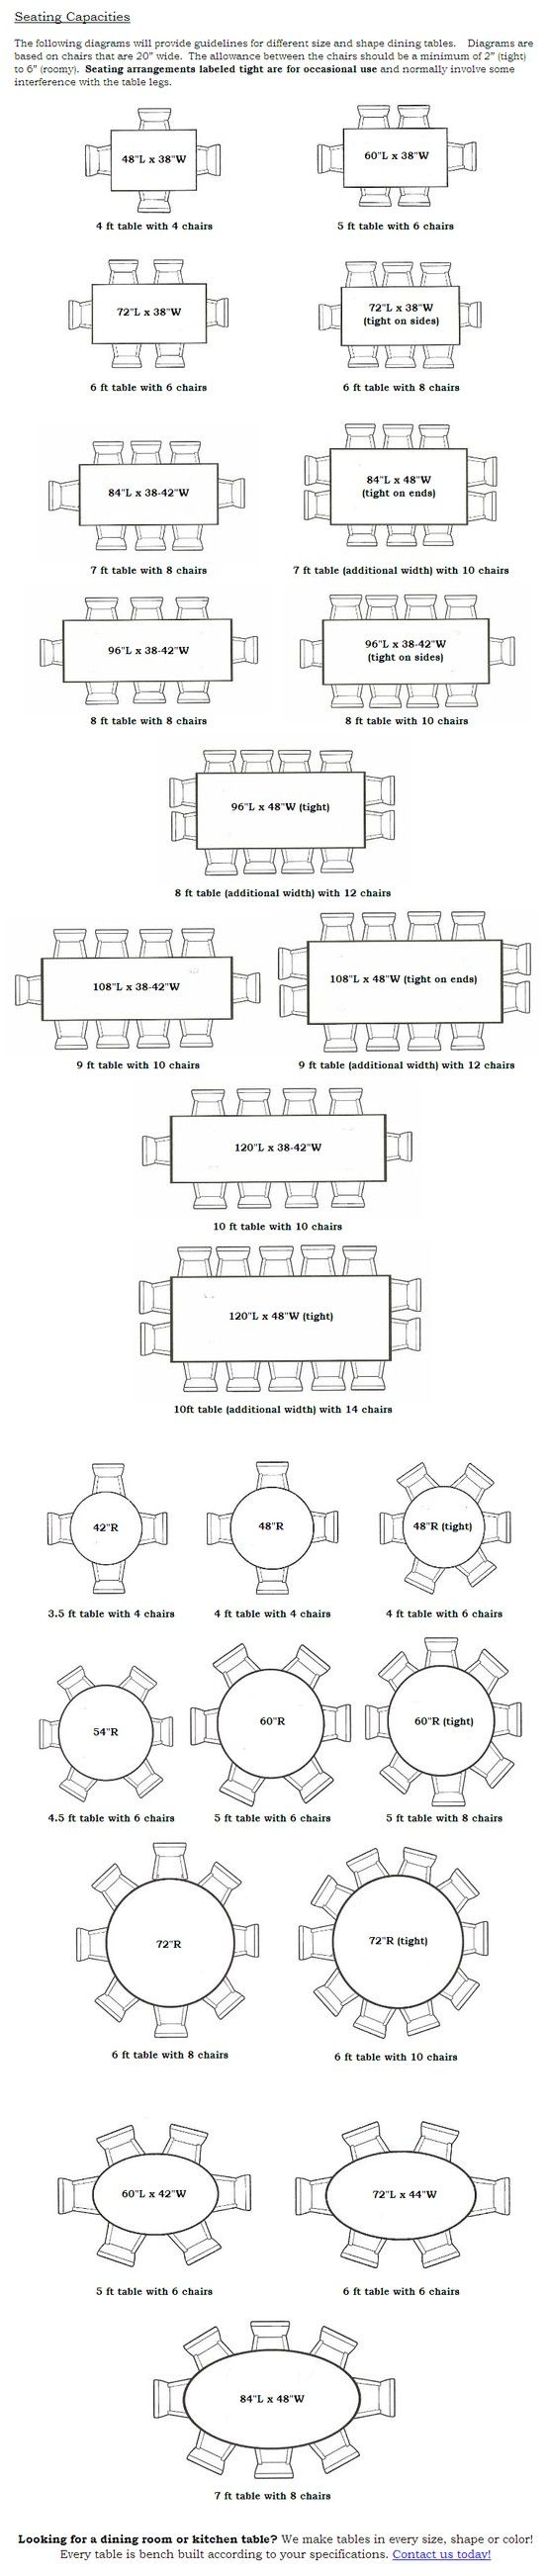 wedding table size chart. wedding table size chart